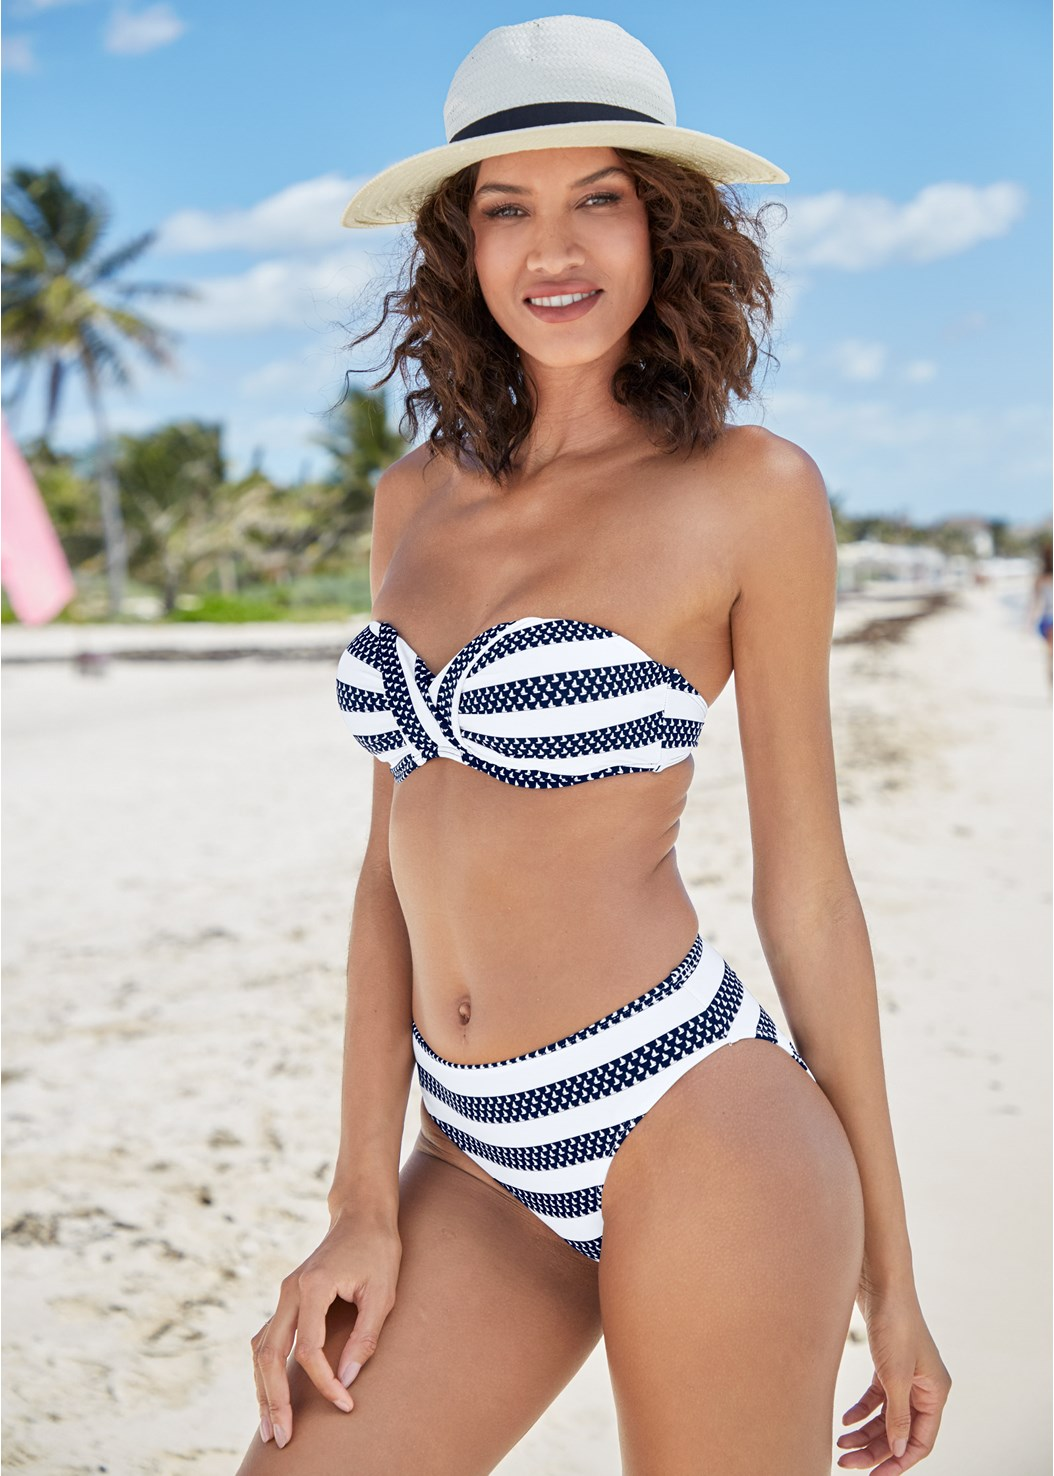 V Front Bandeau Top,Mid Rise Hipster Classic Bikini Bottom,Strappy Side Bikini Bottom